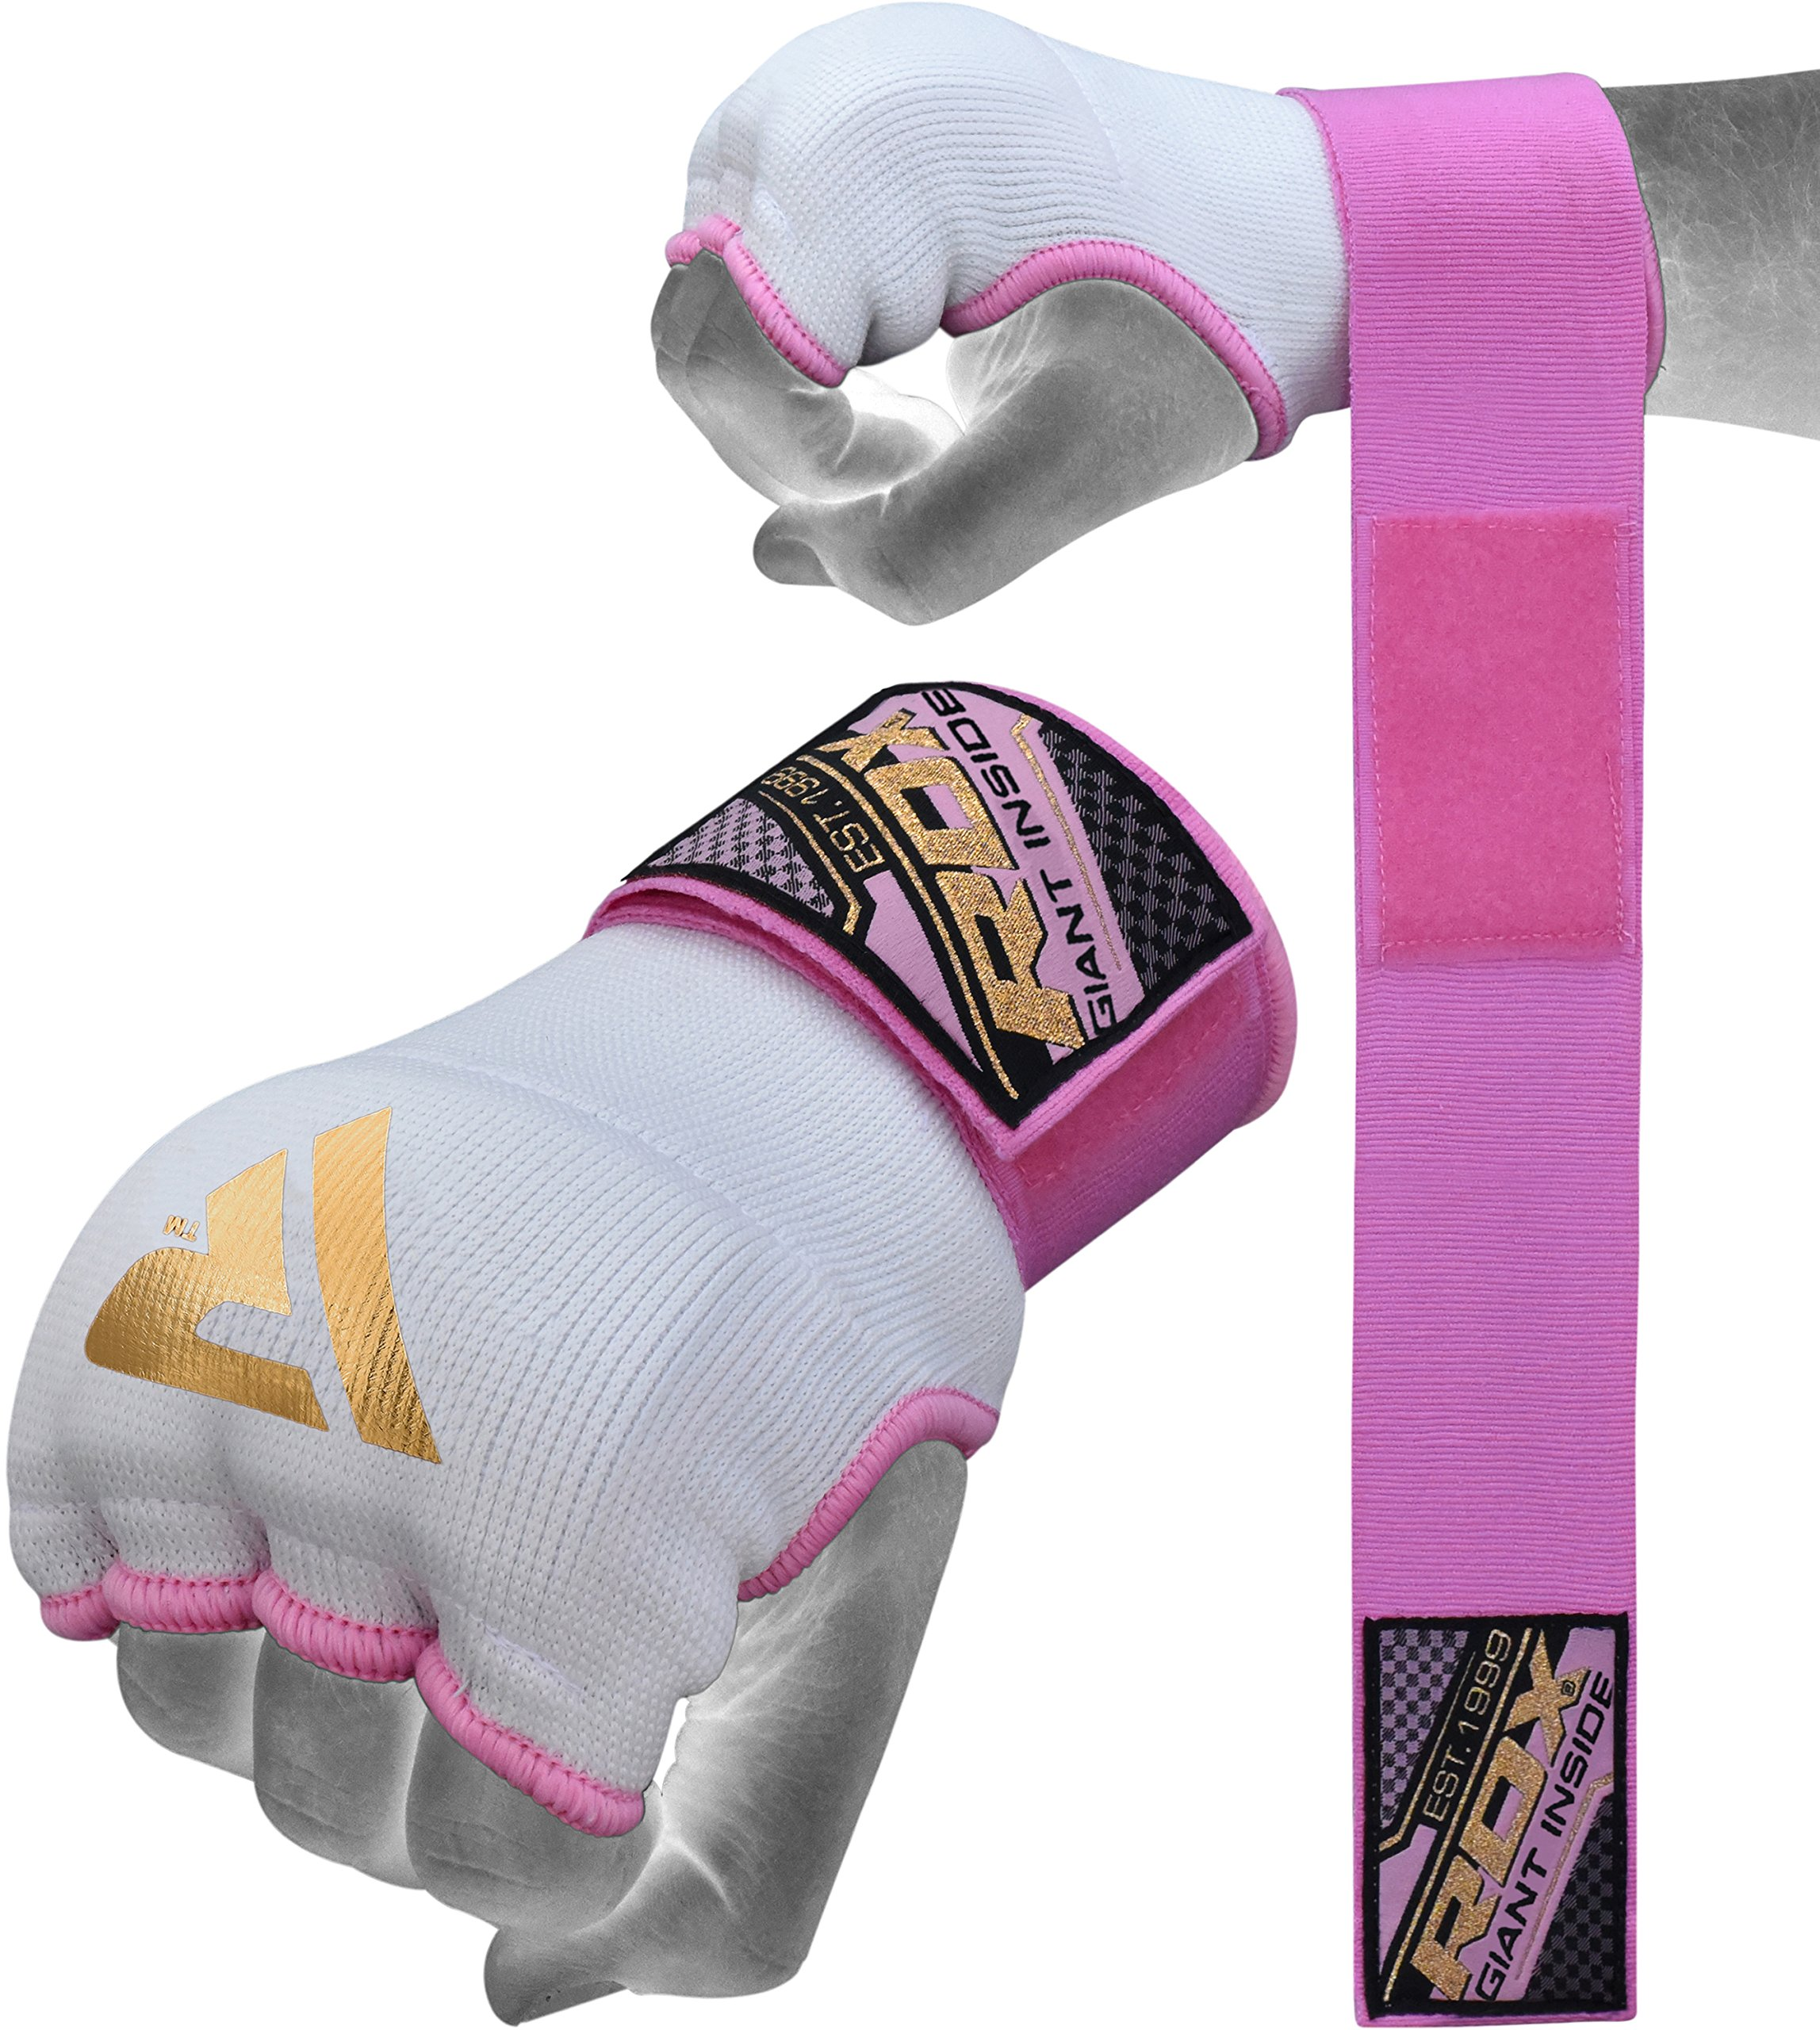 Fitness Inner Gloves: RDX Hand Wraps Ladies Training Boxing Inner Gloves MMA